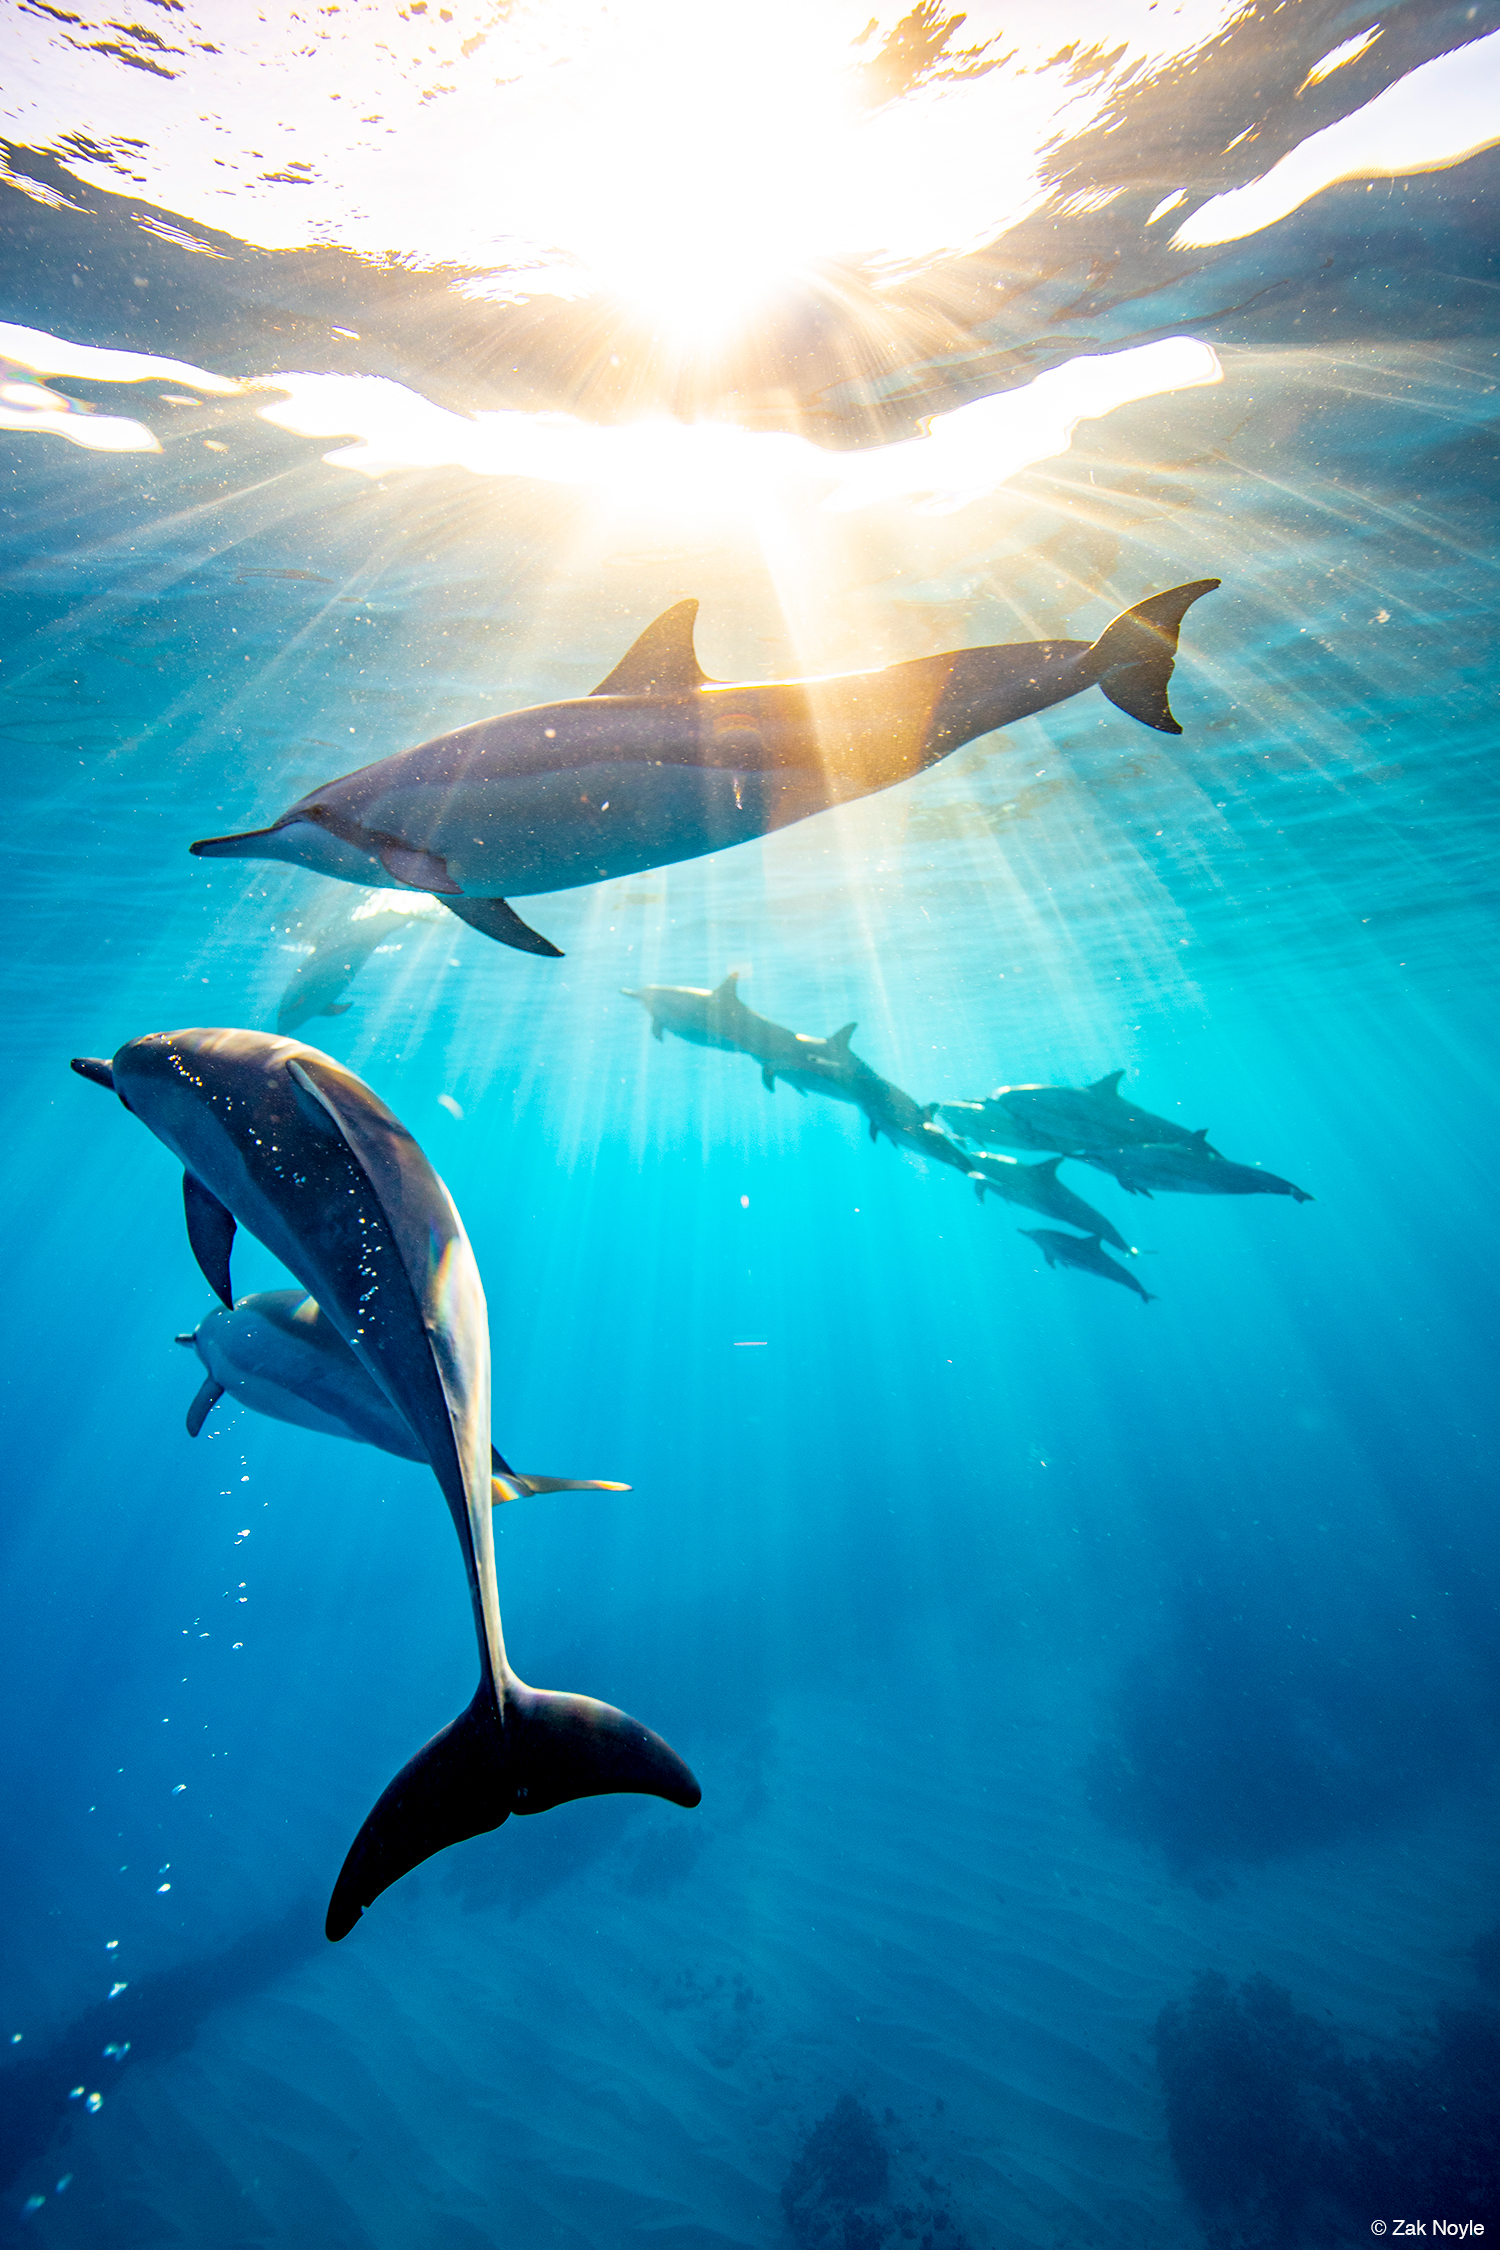 On Assignment: Diving with Dolphins